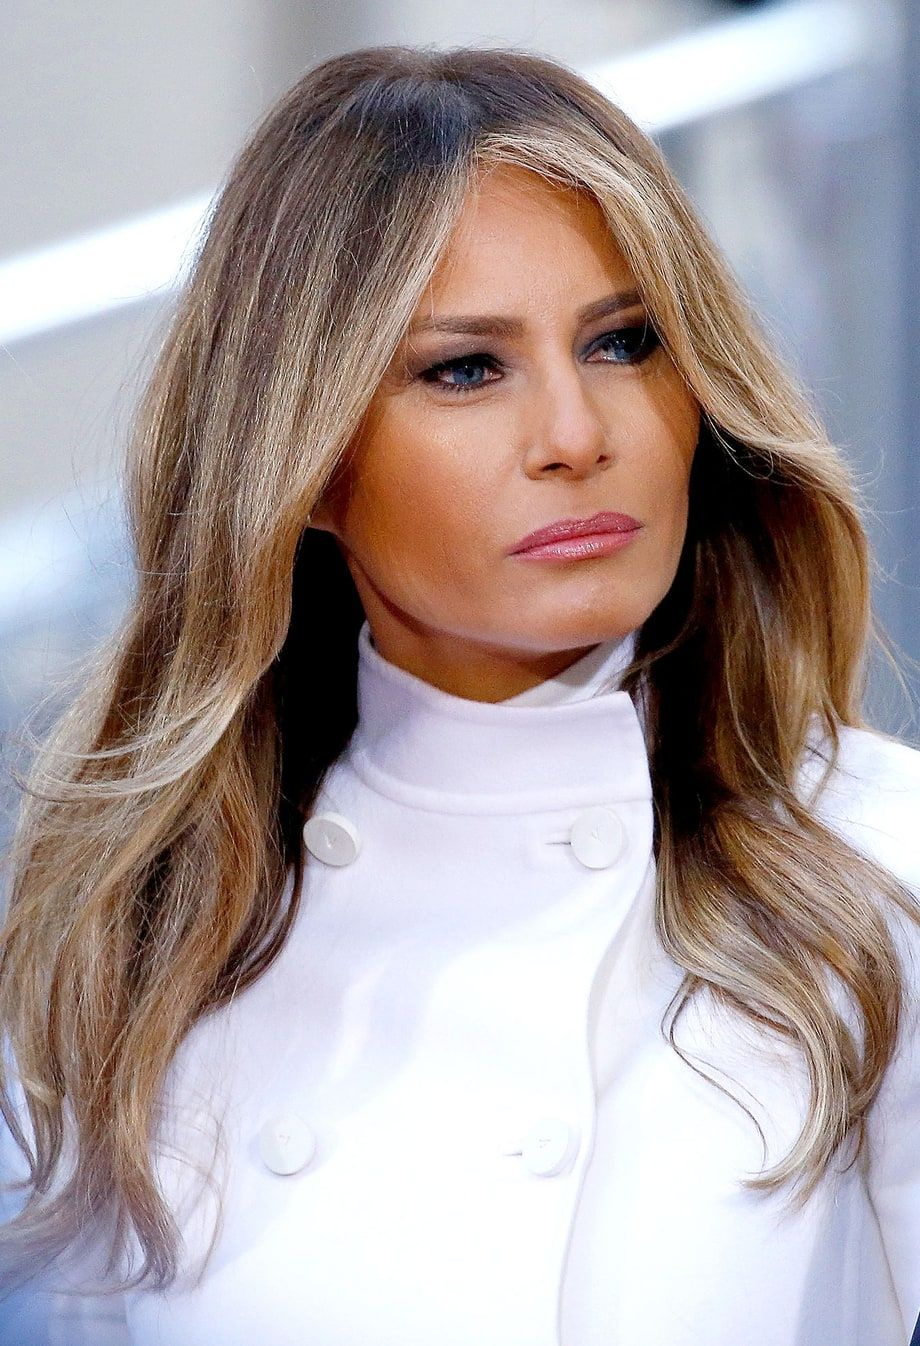 Melania Trump More